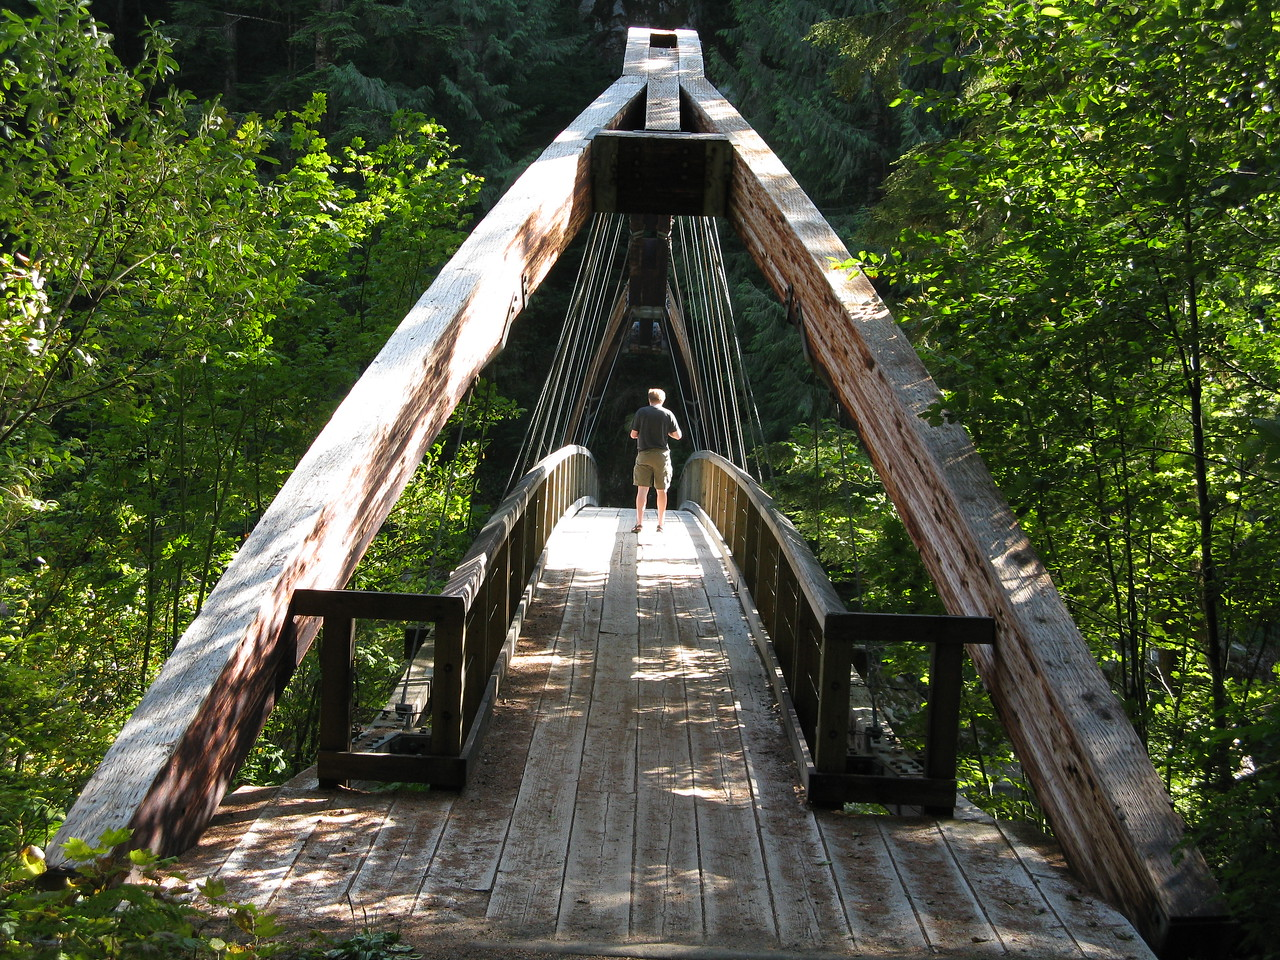 This is a foot bridge over the Middle Fork of the Snoqualmie River just downstream from the confluence with the Taylor River.  It is also the start of the Middle Fork Trail.